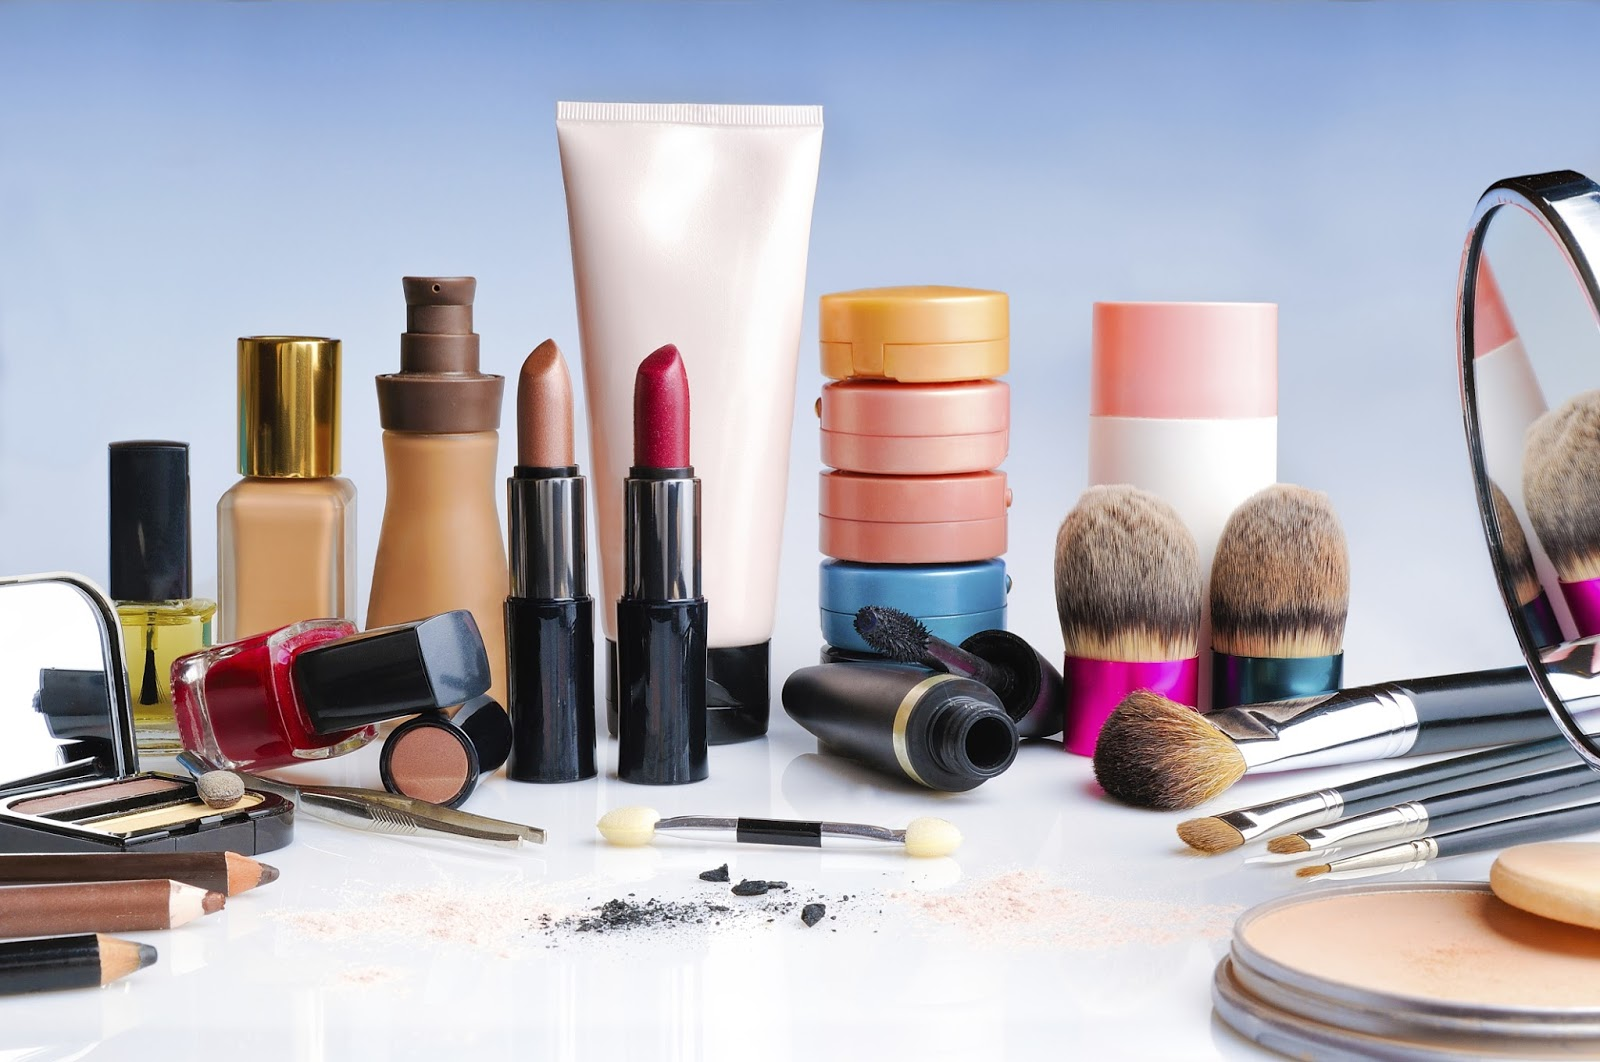 Importing cosmetics to Vietnam